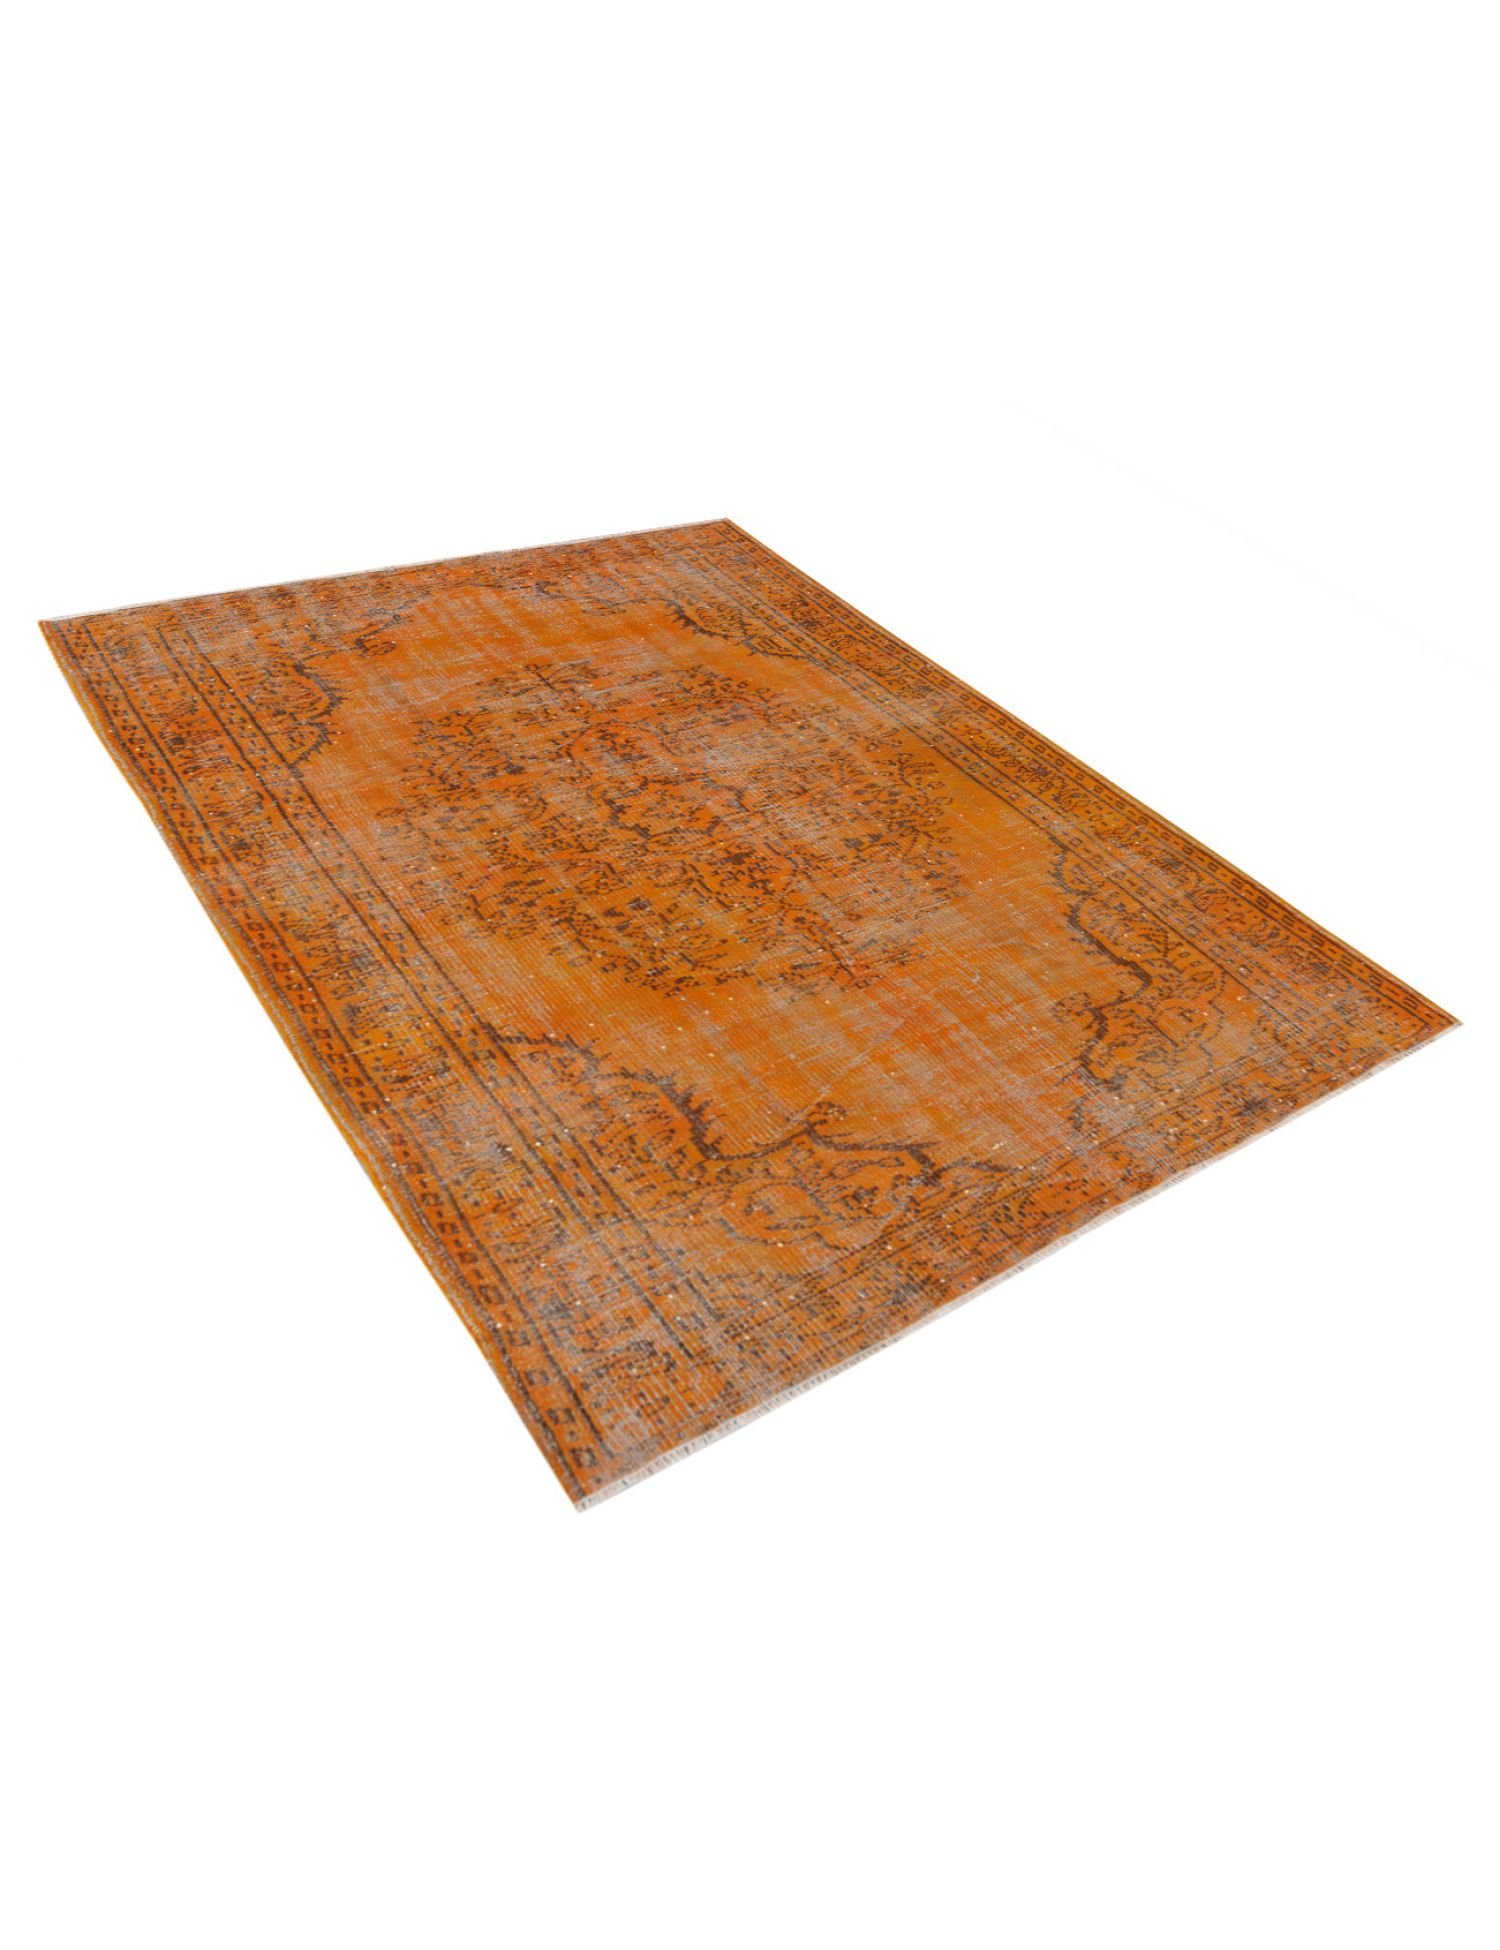 Vintage Carpet  orange <br/>233 x 149 cm